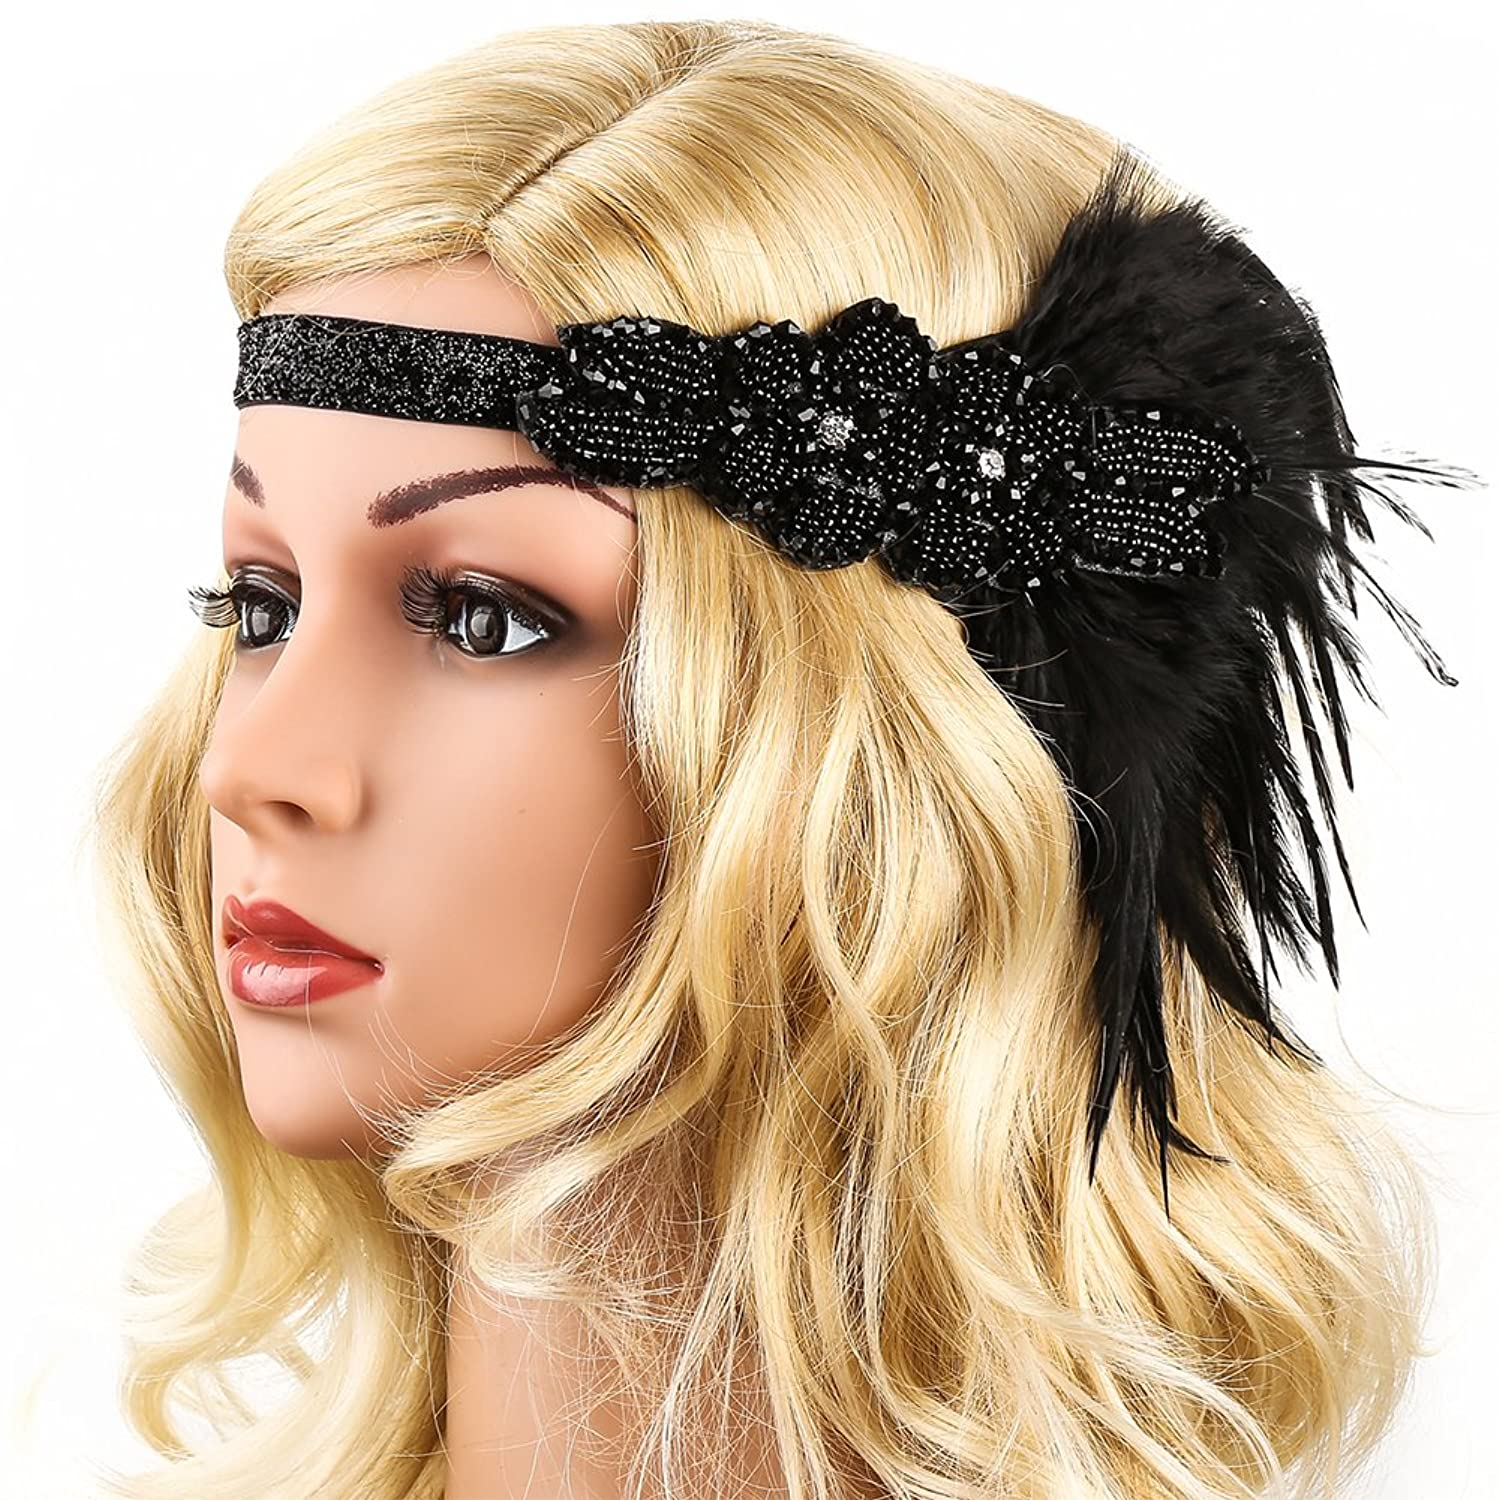 1920s Accessories | Great Gatsby Accessories Guide 1920s Headband1920s Headpiece - KQueenStar 1920s Flapper Headpiece1920s Feather Headband Flapper  AT vintagedancer.com